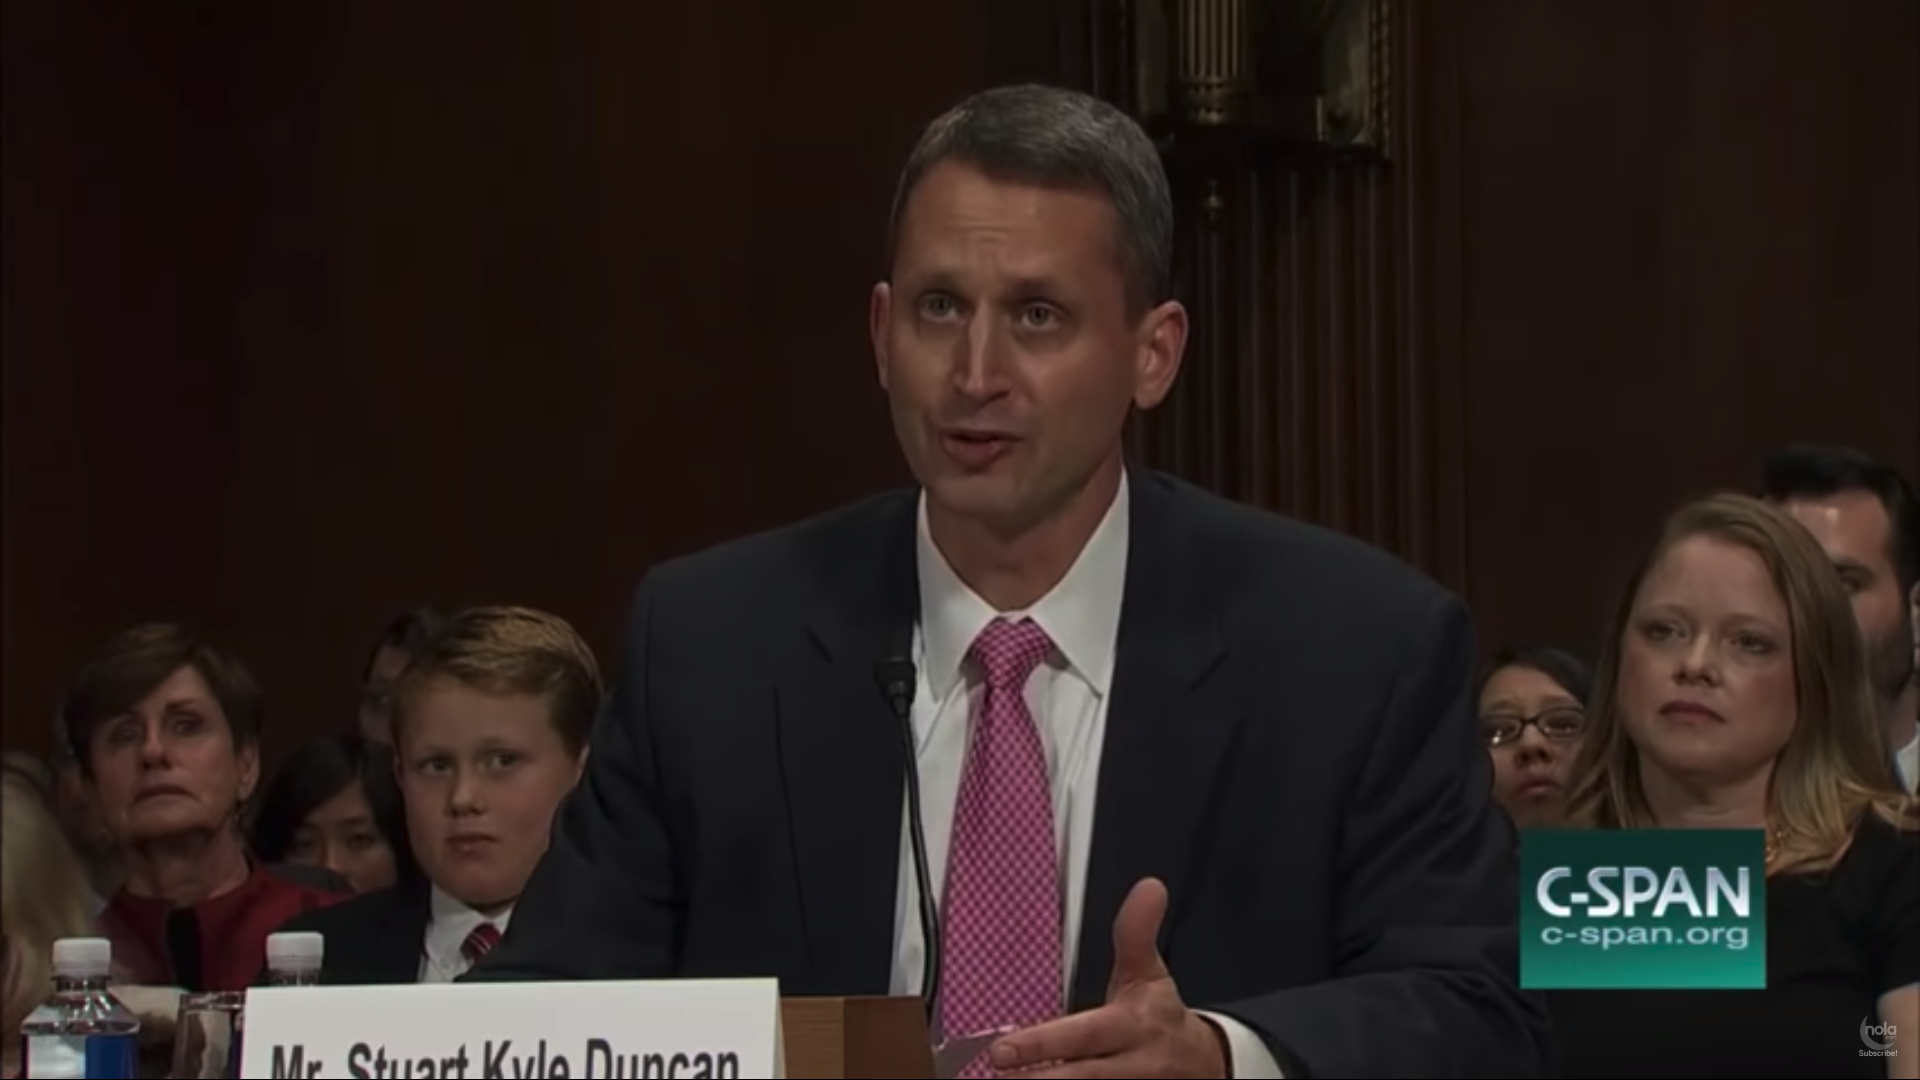 Trump-appointed Judge Kyle Duncan of US Fifth Circuit Court of Appeals refused to use the inmates correct name and pronouns